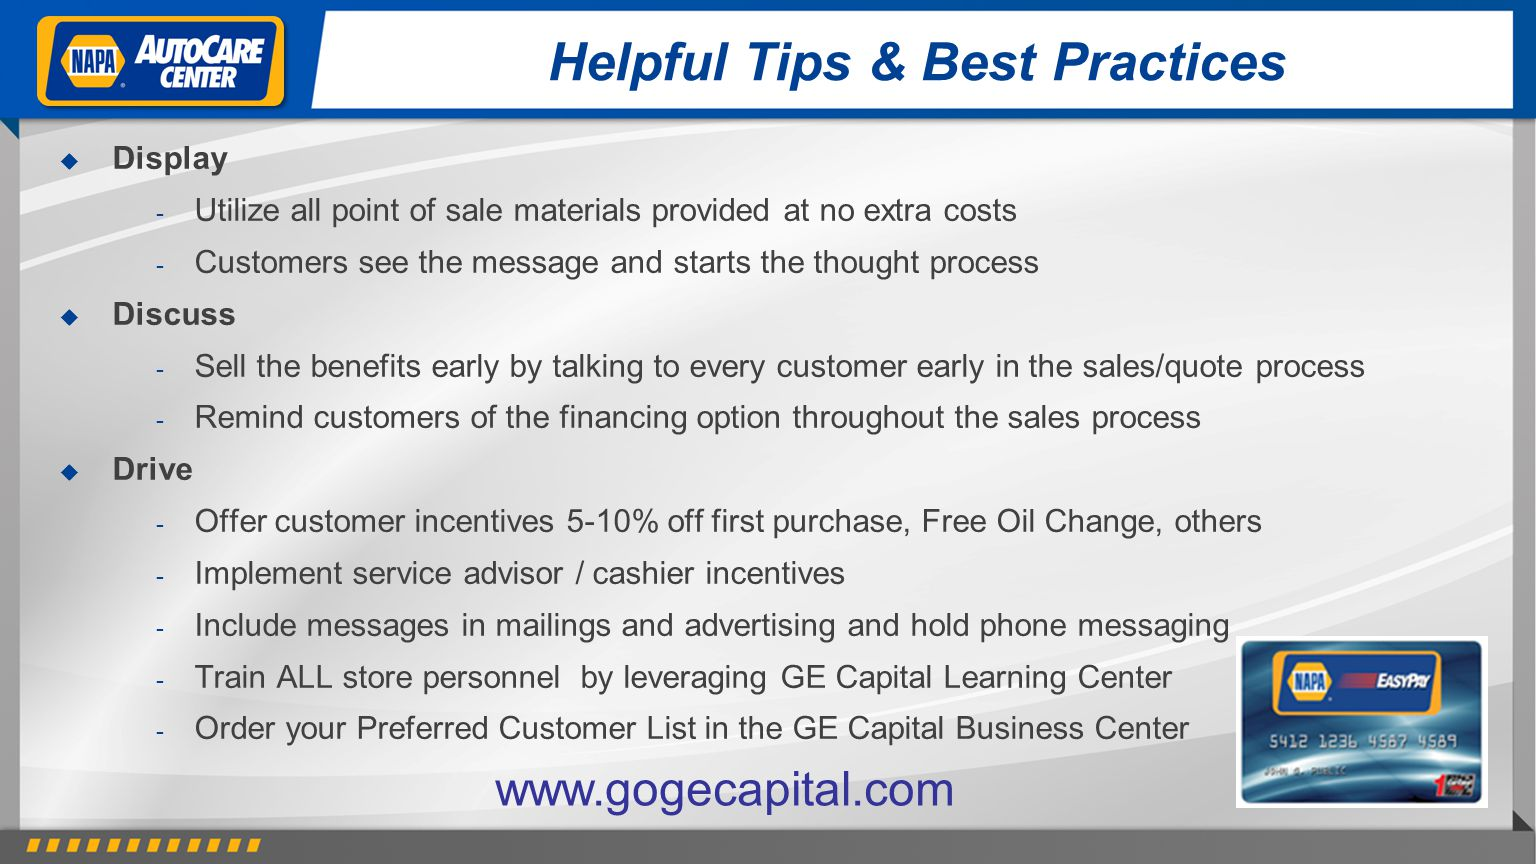 Helpful Tips & Best Practices Display - Utilize all point of sale materials provided at no extra costs - Customers see the message and starts the thought process Discuss - Sell the benefits early by talking to every customer early in the sales/quote process - Remind customers of the financing option throughout the sales process Drive - Offer customer incentives 5-10% off first purchase, Free Oil Change, others - Implement service advisor / cashier incentives - Include messages in mailings and advertising and hold phone messaging - Train ALL store personnel by leveraging GE Capital Learning Center - Order your Preferred Customer List in the GE Capital Business Center www.gogecapital.com